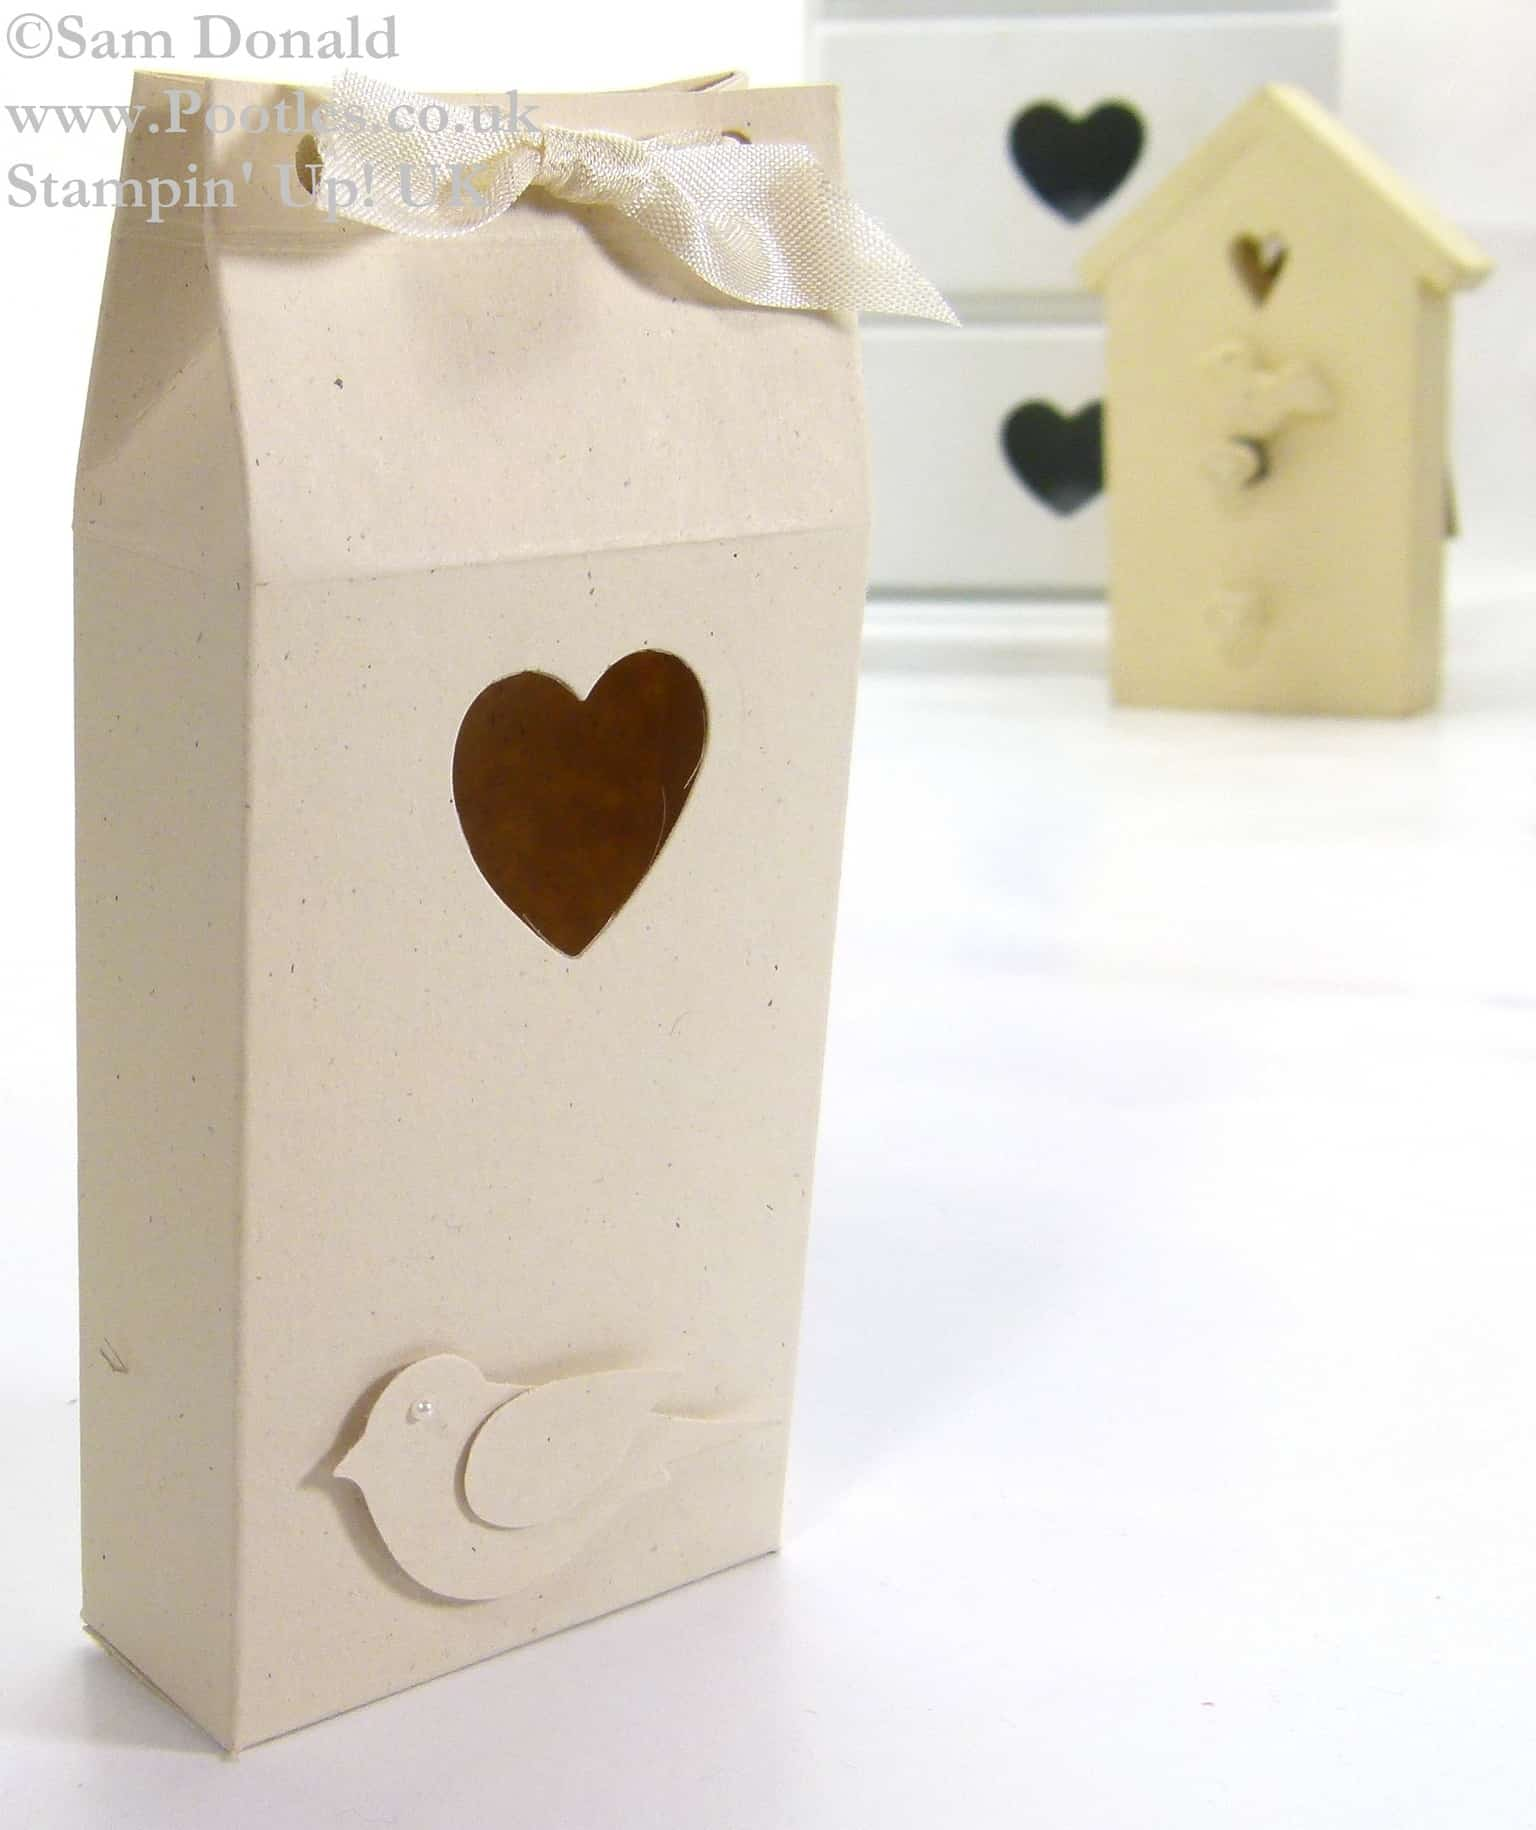 POOTLES Stampin Up UK Inspired Bird Gift Box Tutorial 2